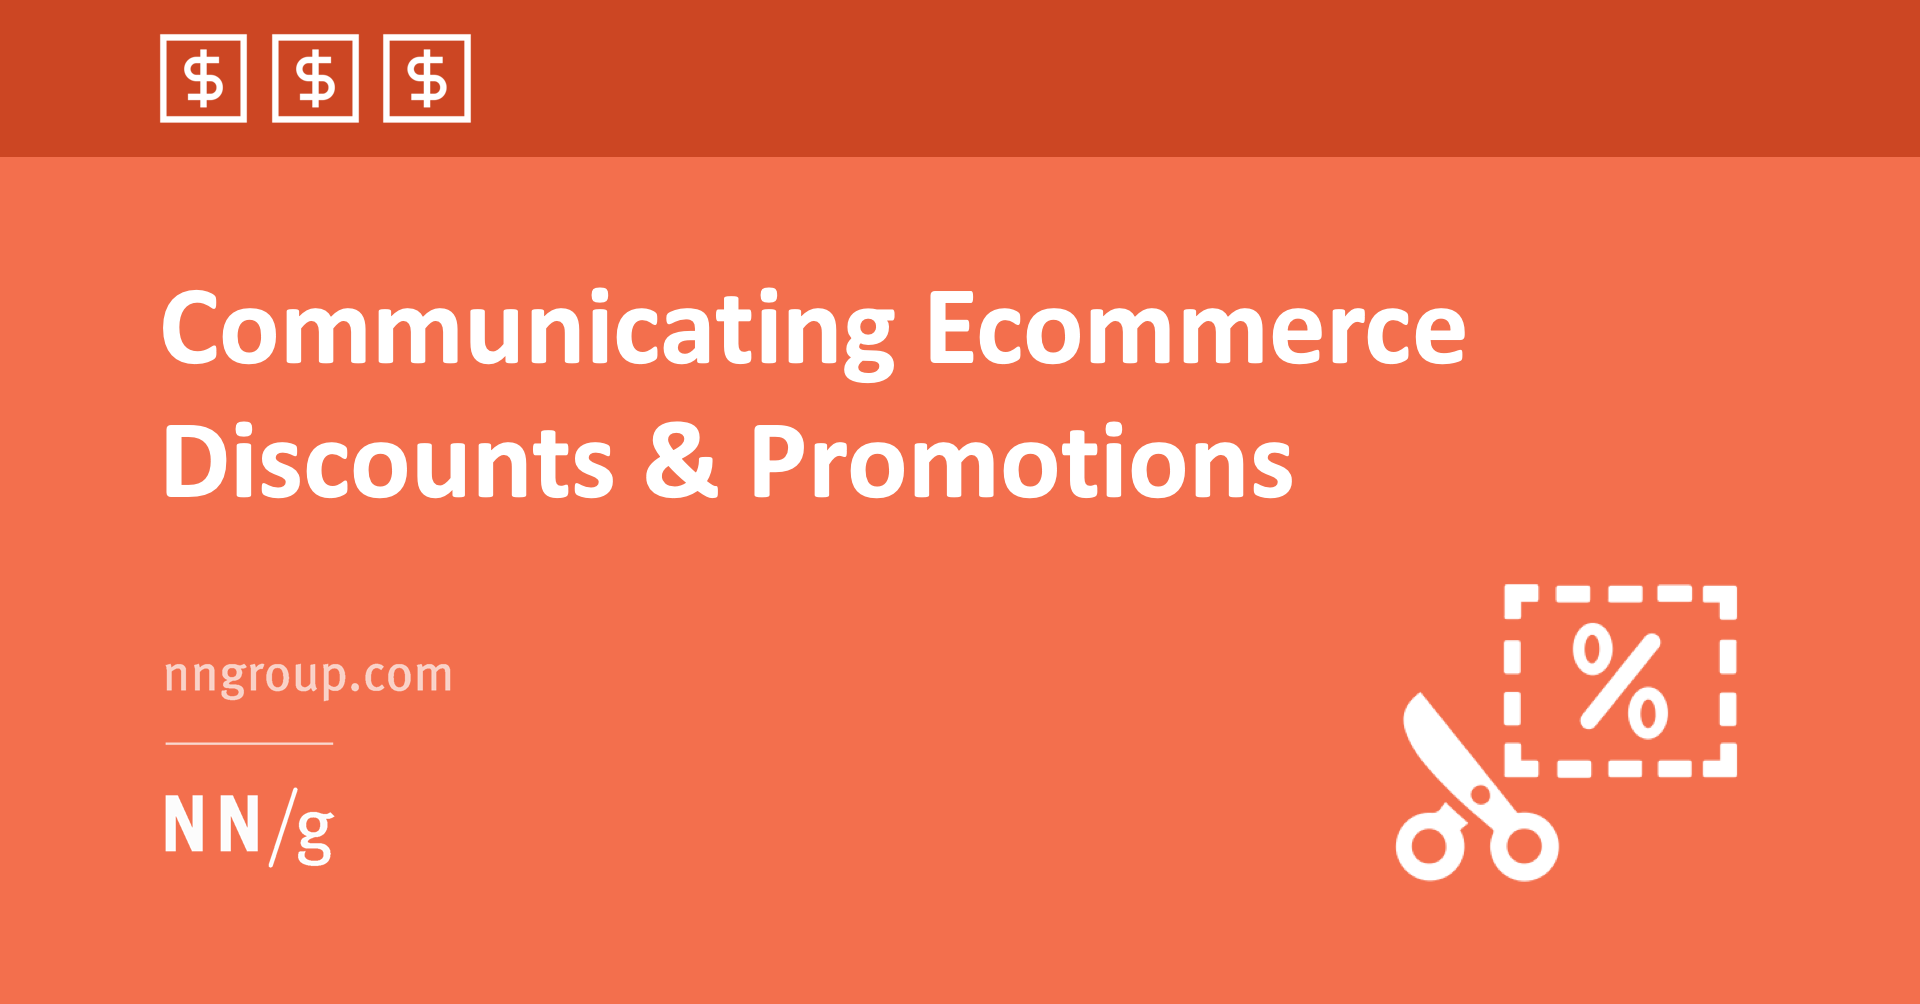 Communicating Ecommerce Discounts and Promotions